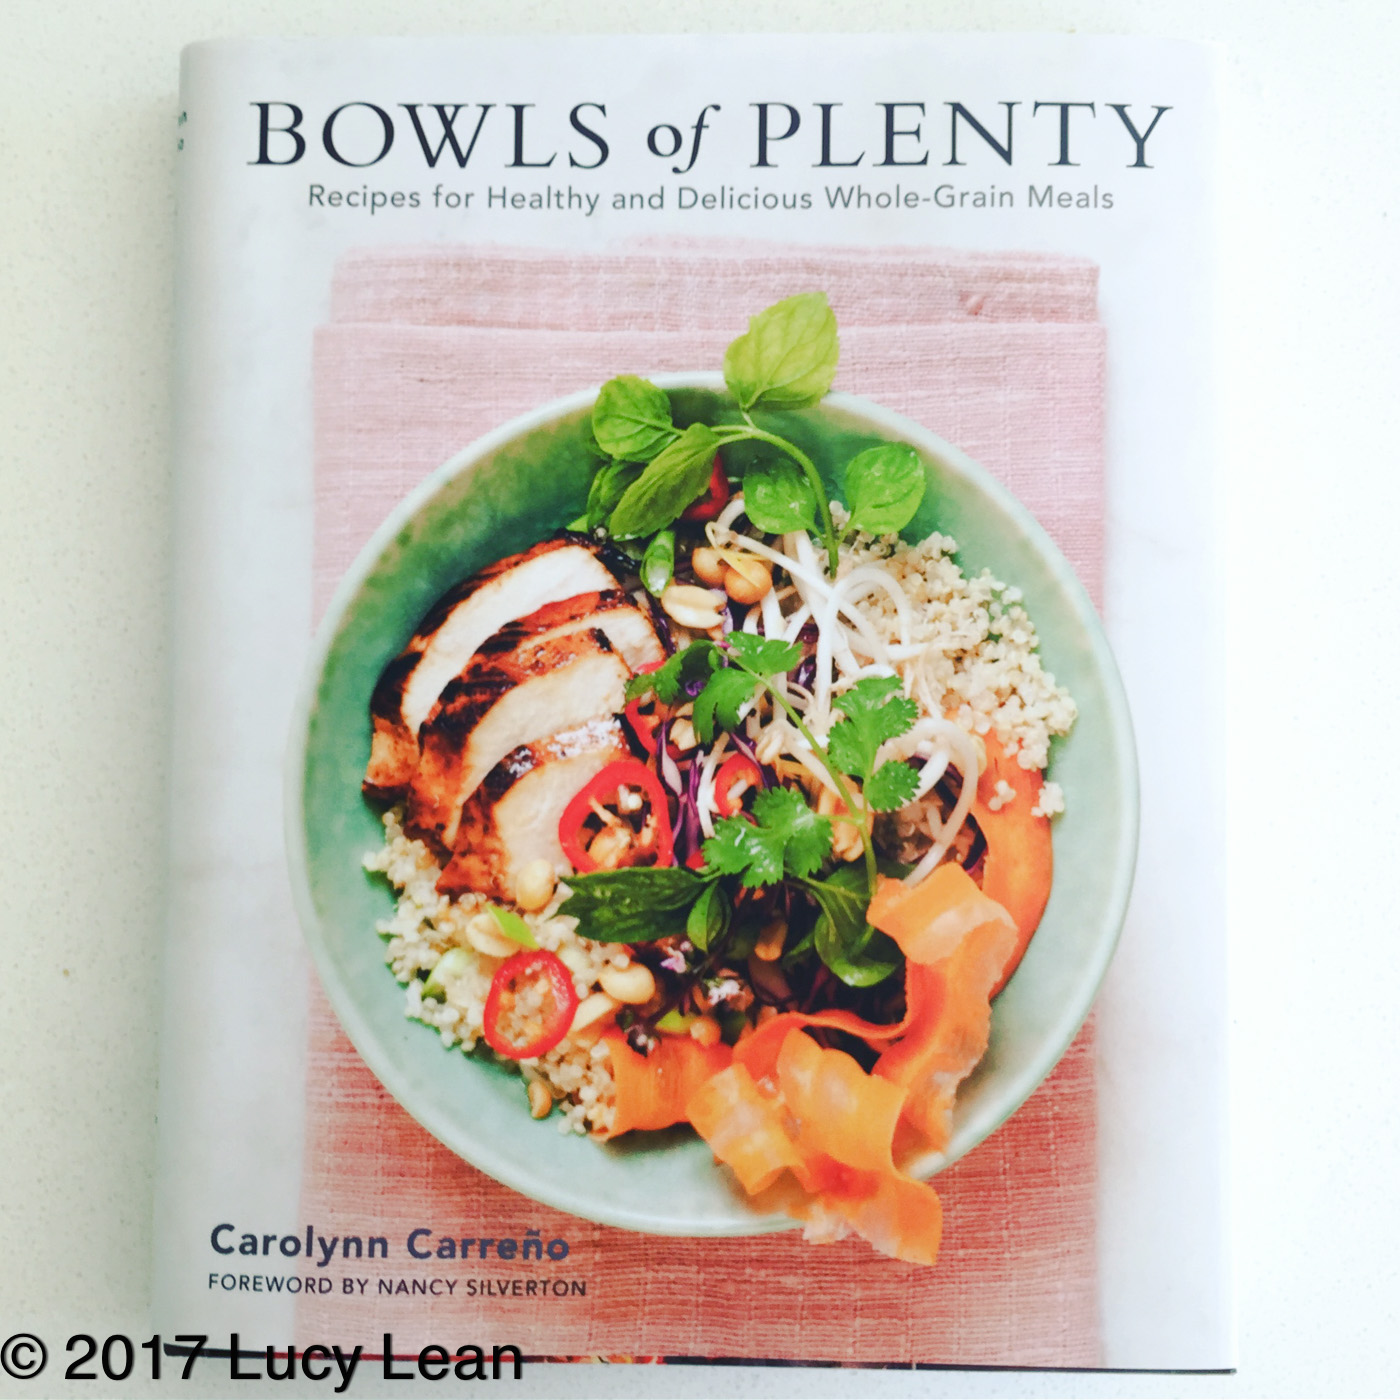 Bowls of Plenty - healthy recipes cookbook